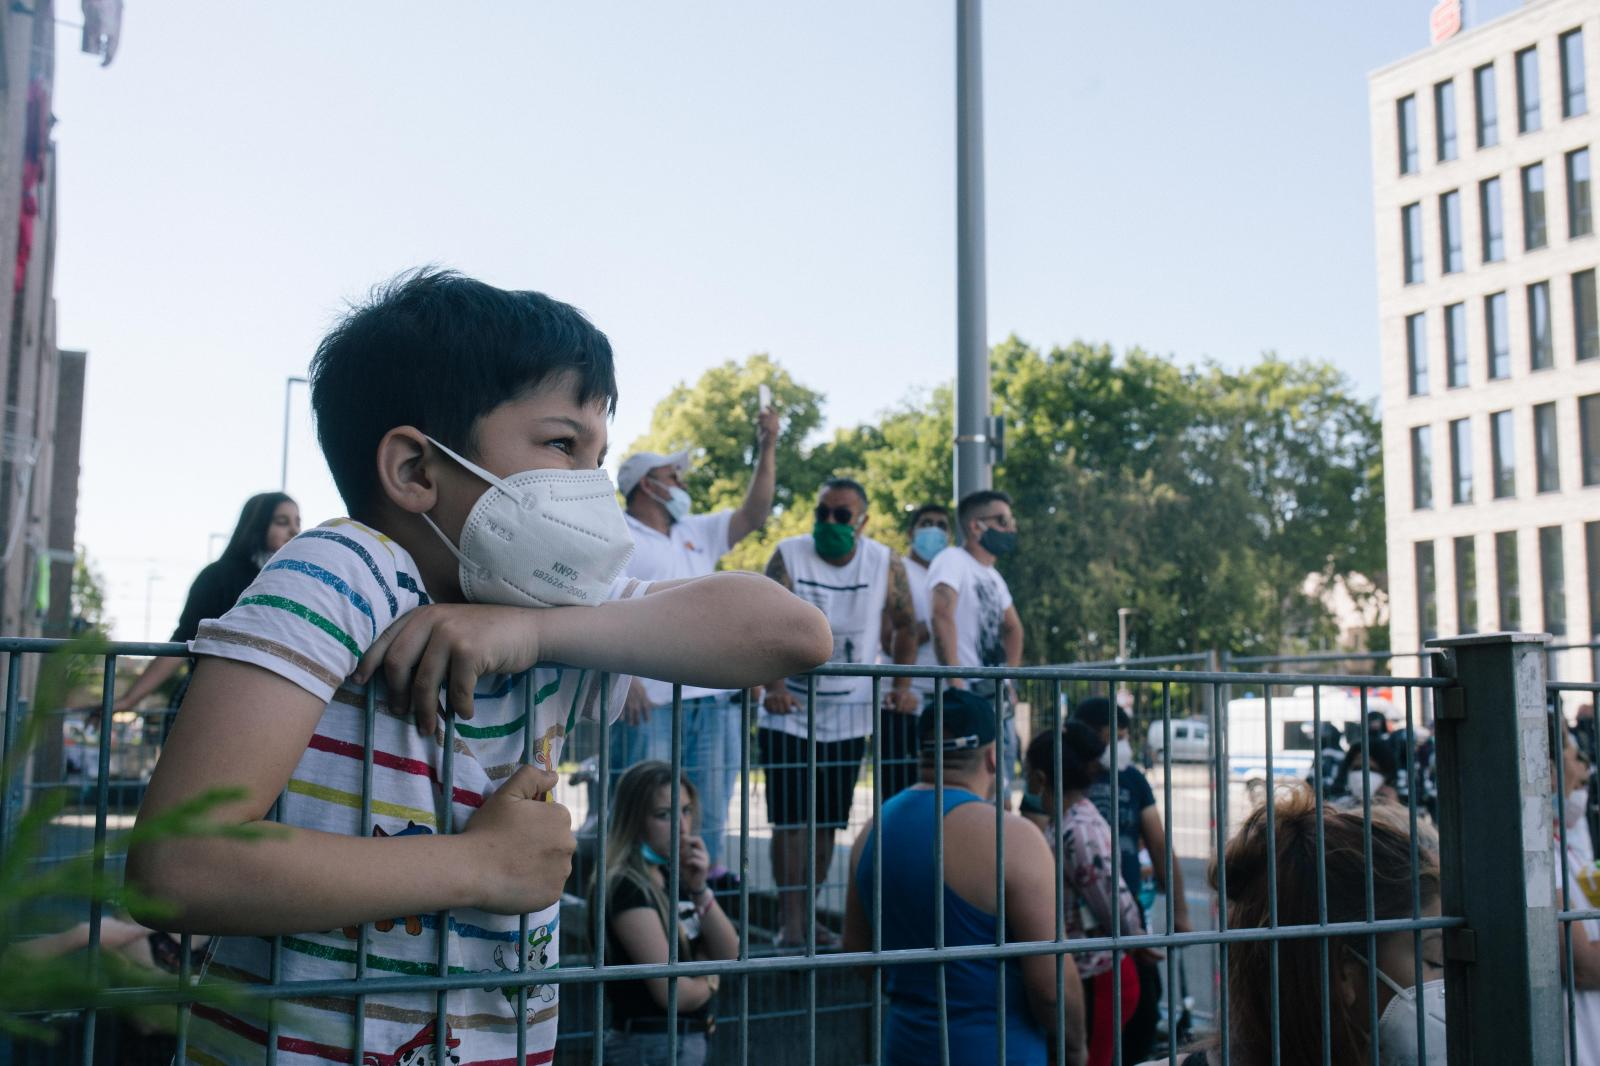 A young boy watches the solidary demonstration and police, standing on a fence. June 23rd